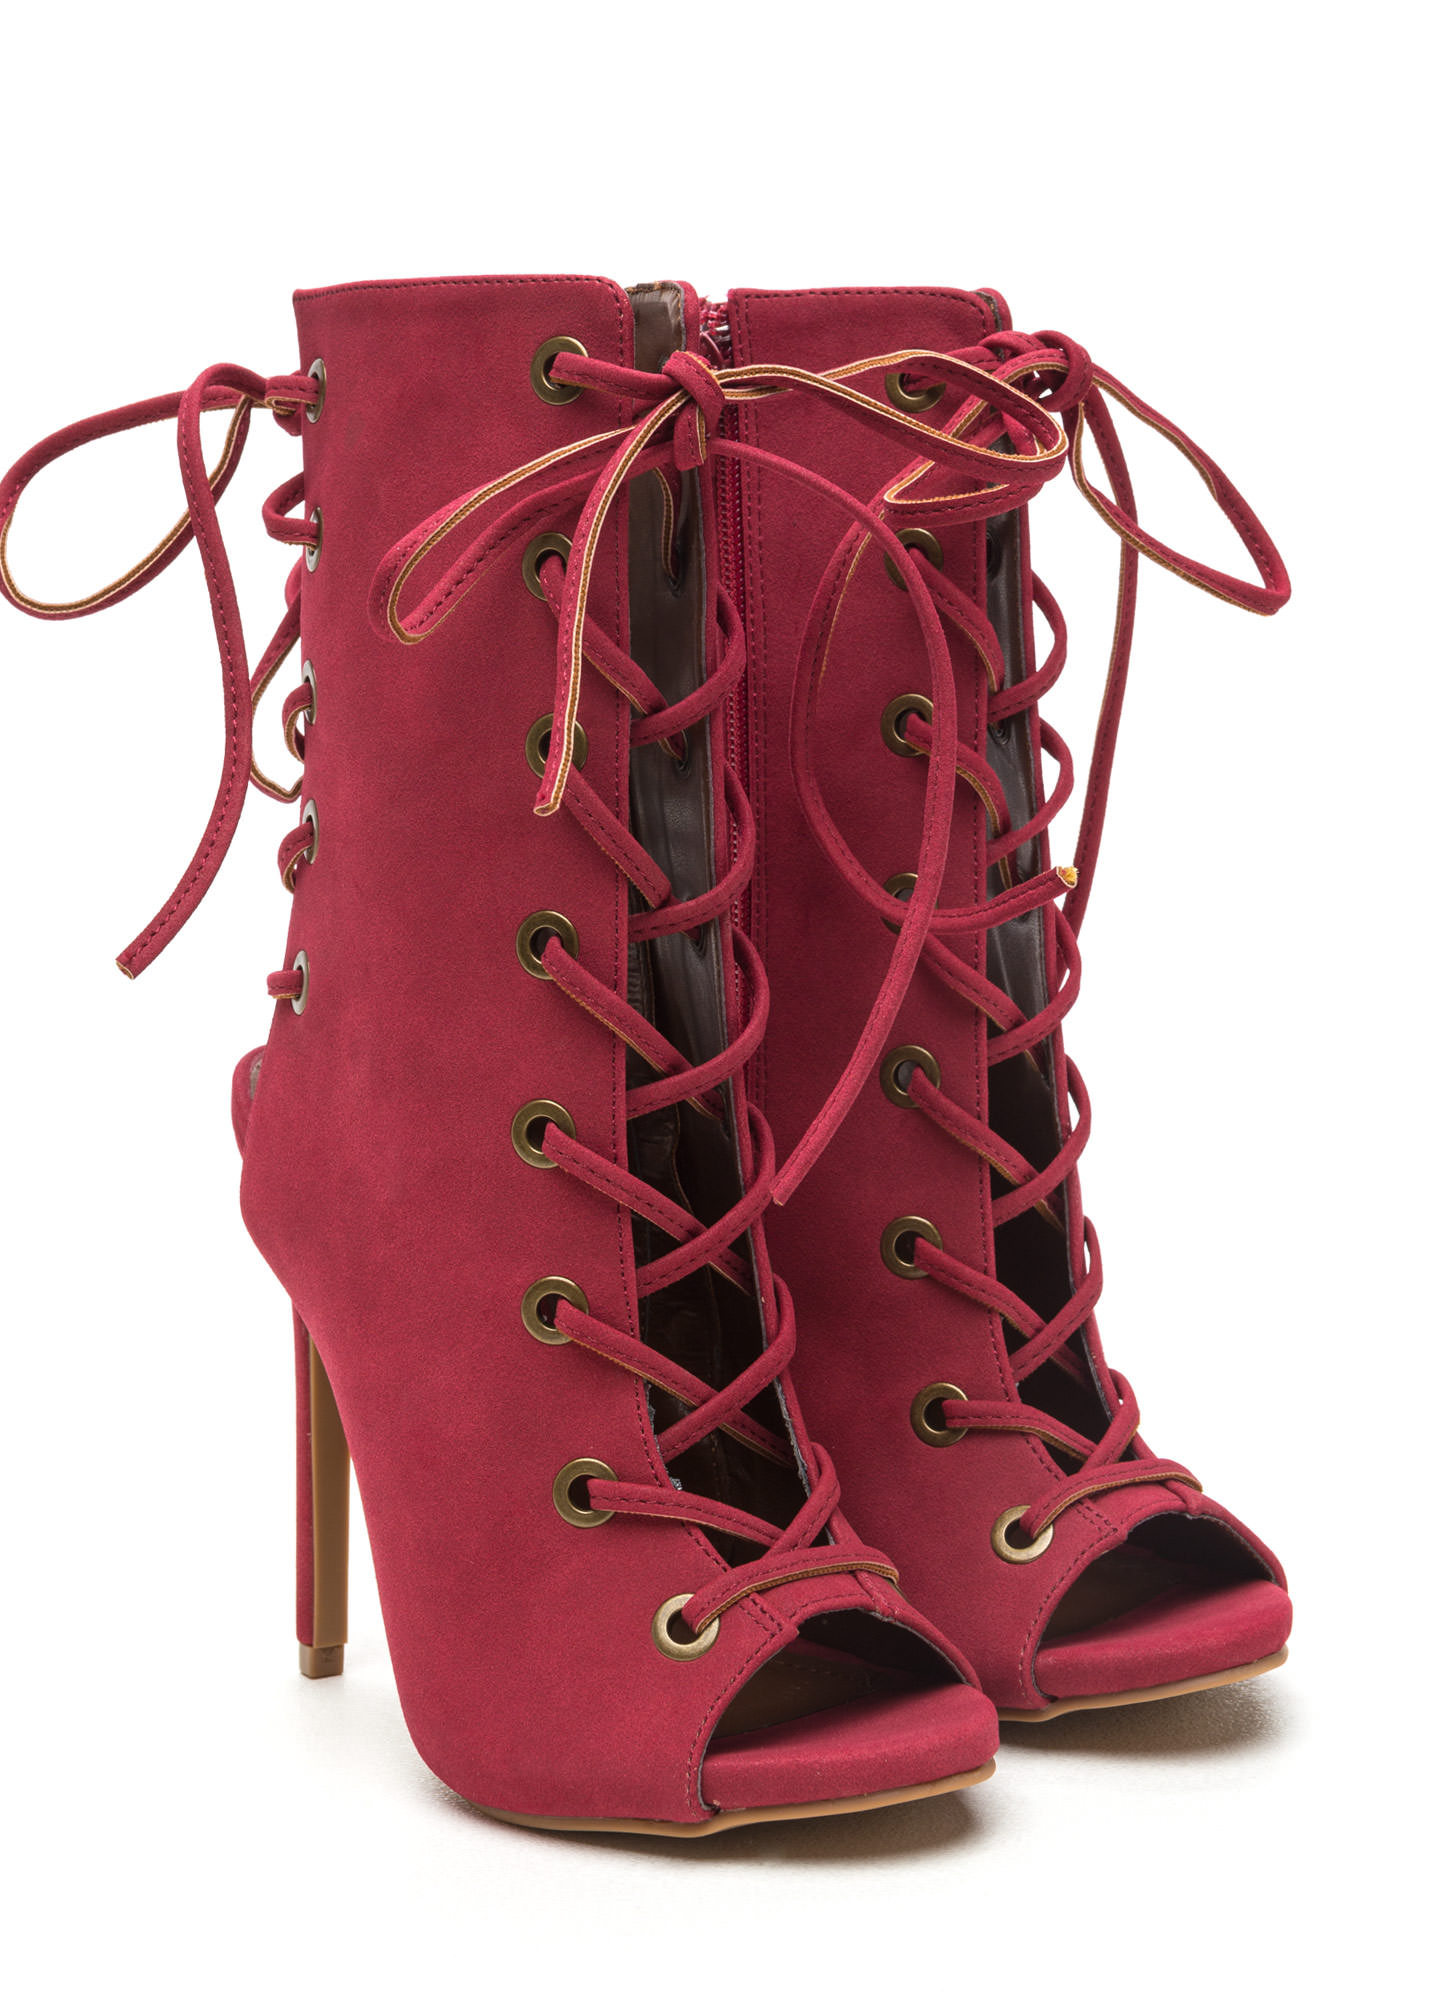 Back lace up boots - Front And Back Lace Up Booties Black Wine Chestnut Gojane Com